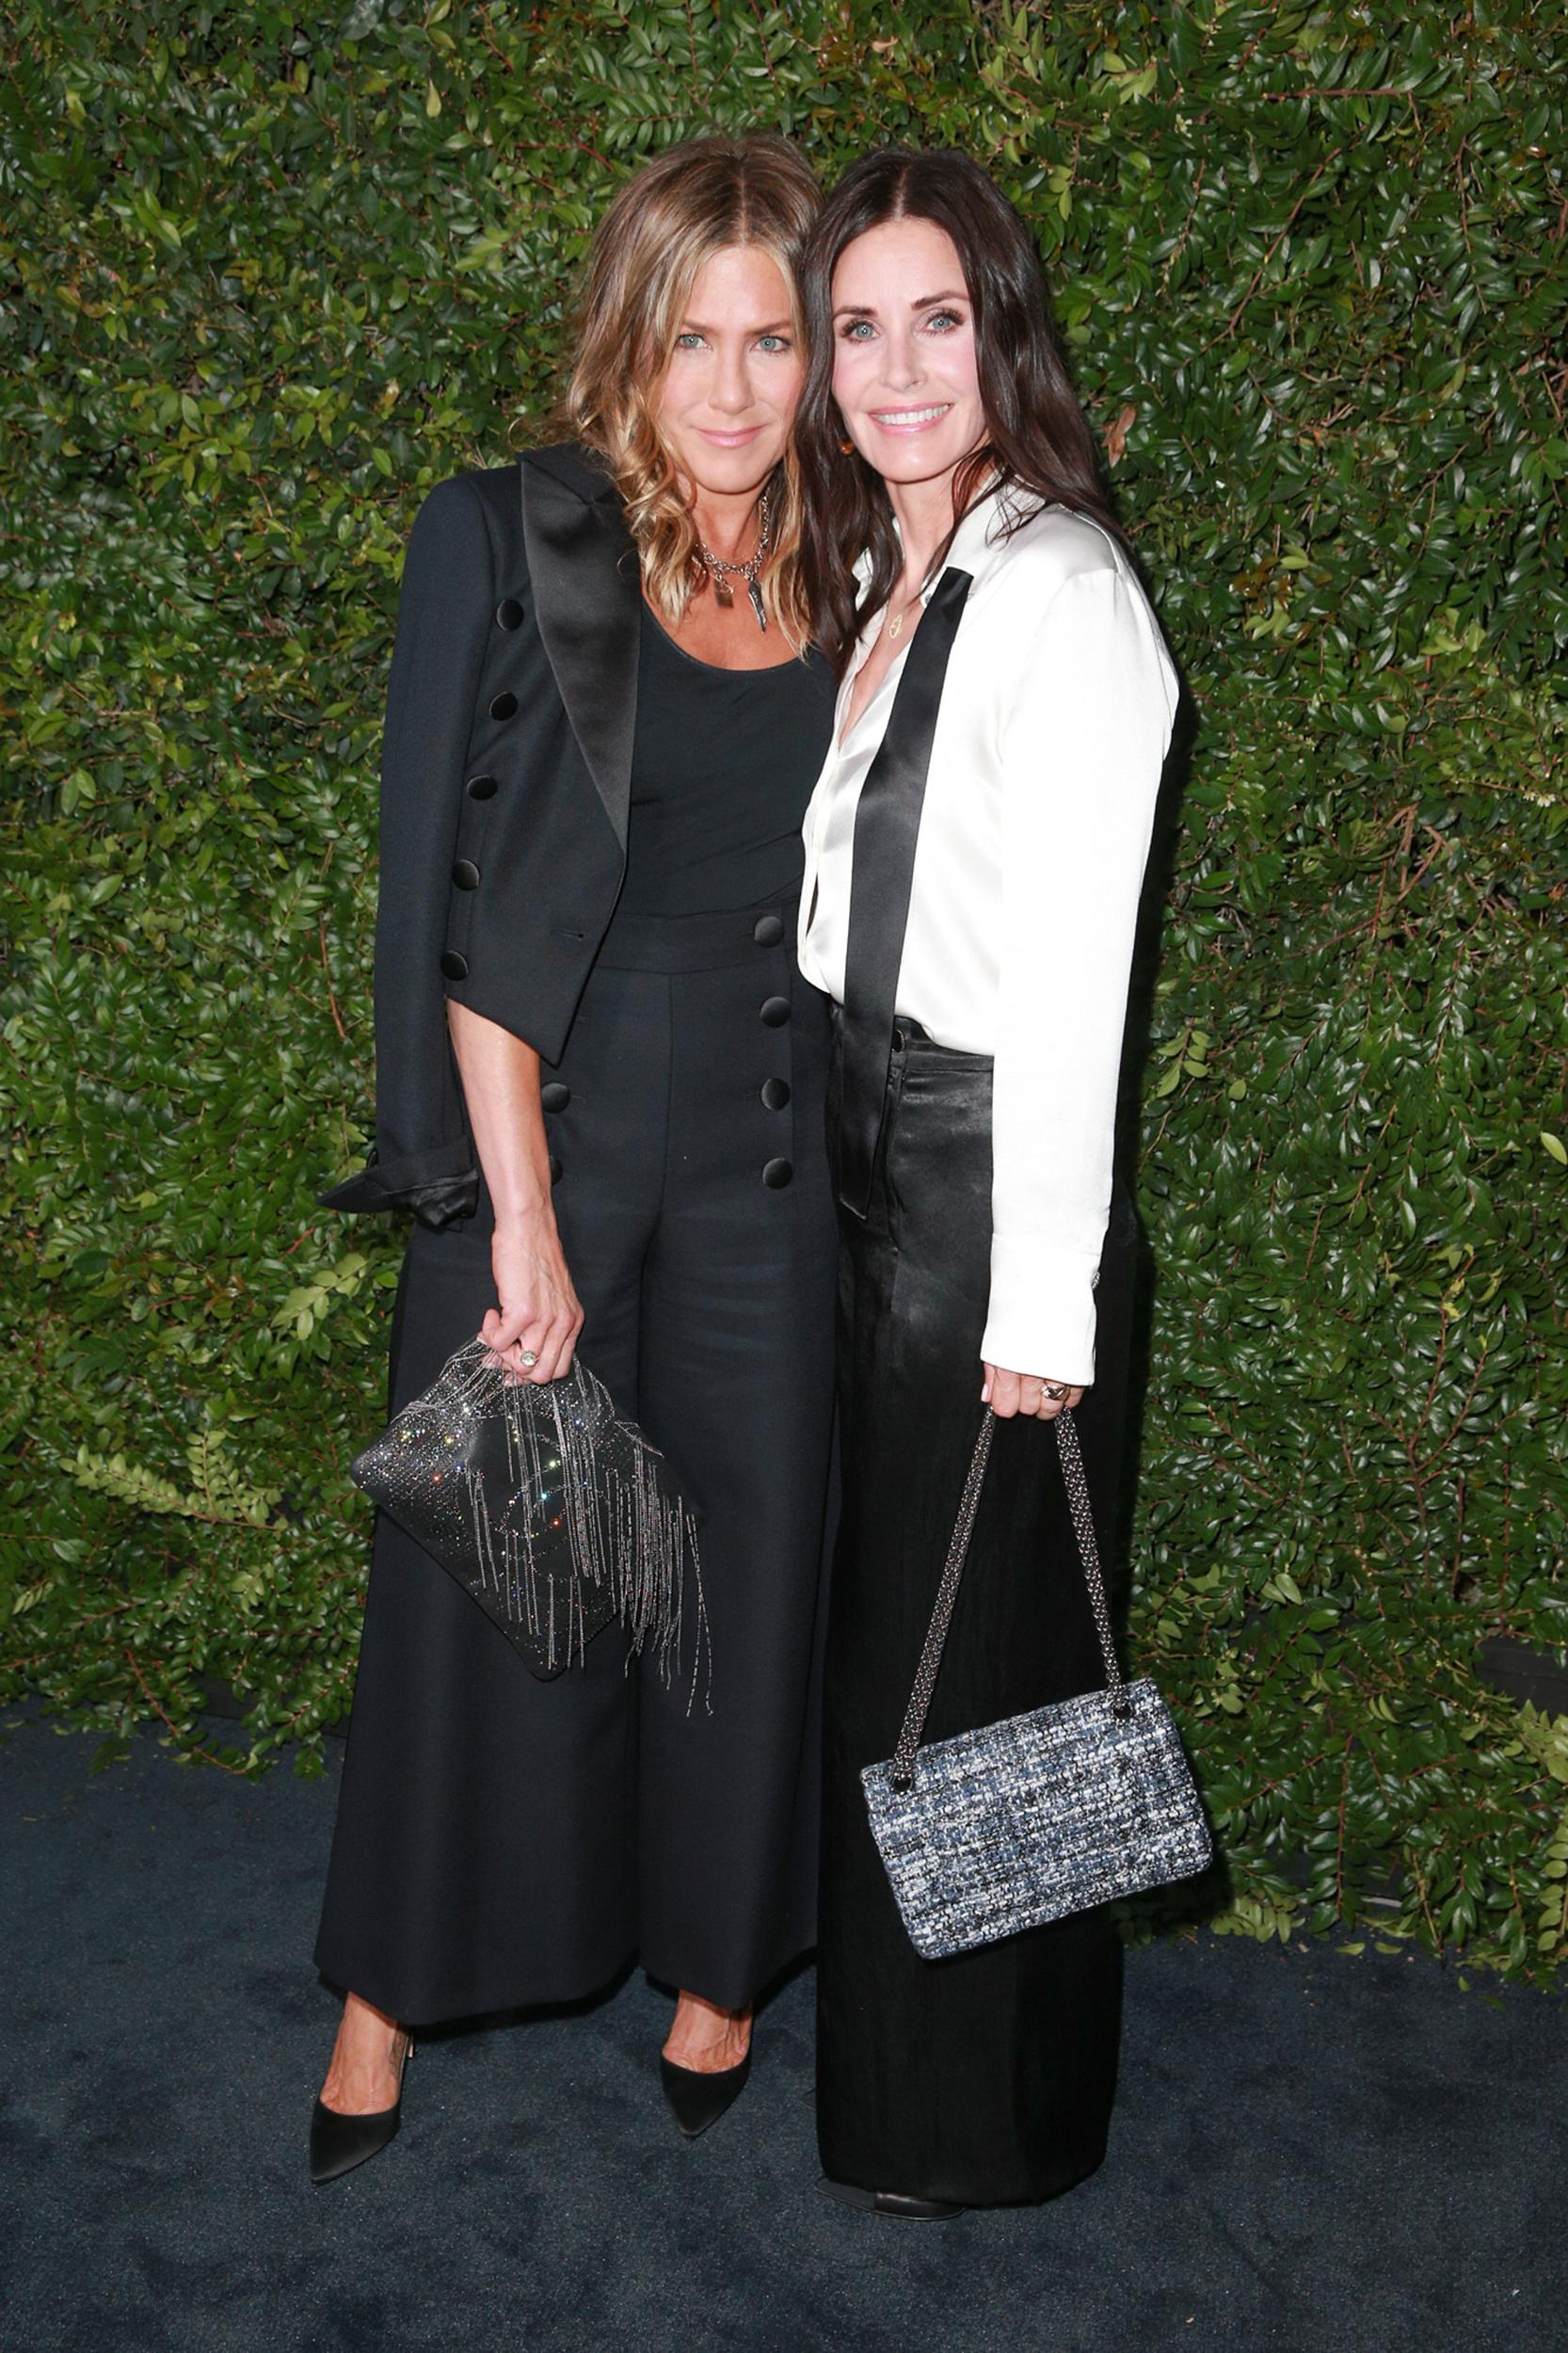 MALIBU, CA - JUNE 02:  Jennifer Aniston (L) and Courtney Cox attend the CHANEL Dinner Celebrating Our Majestic Oceans, A Benefit For NRDC on June 2, 2018 in Malibu, California.  (Photo by Rich Fury/Getty Images)